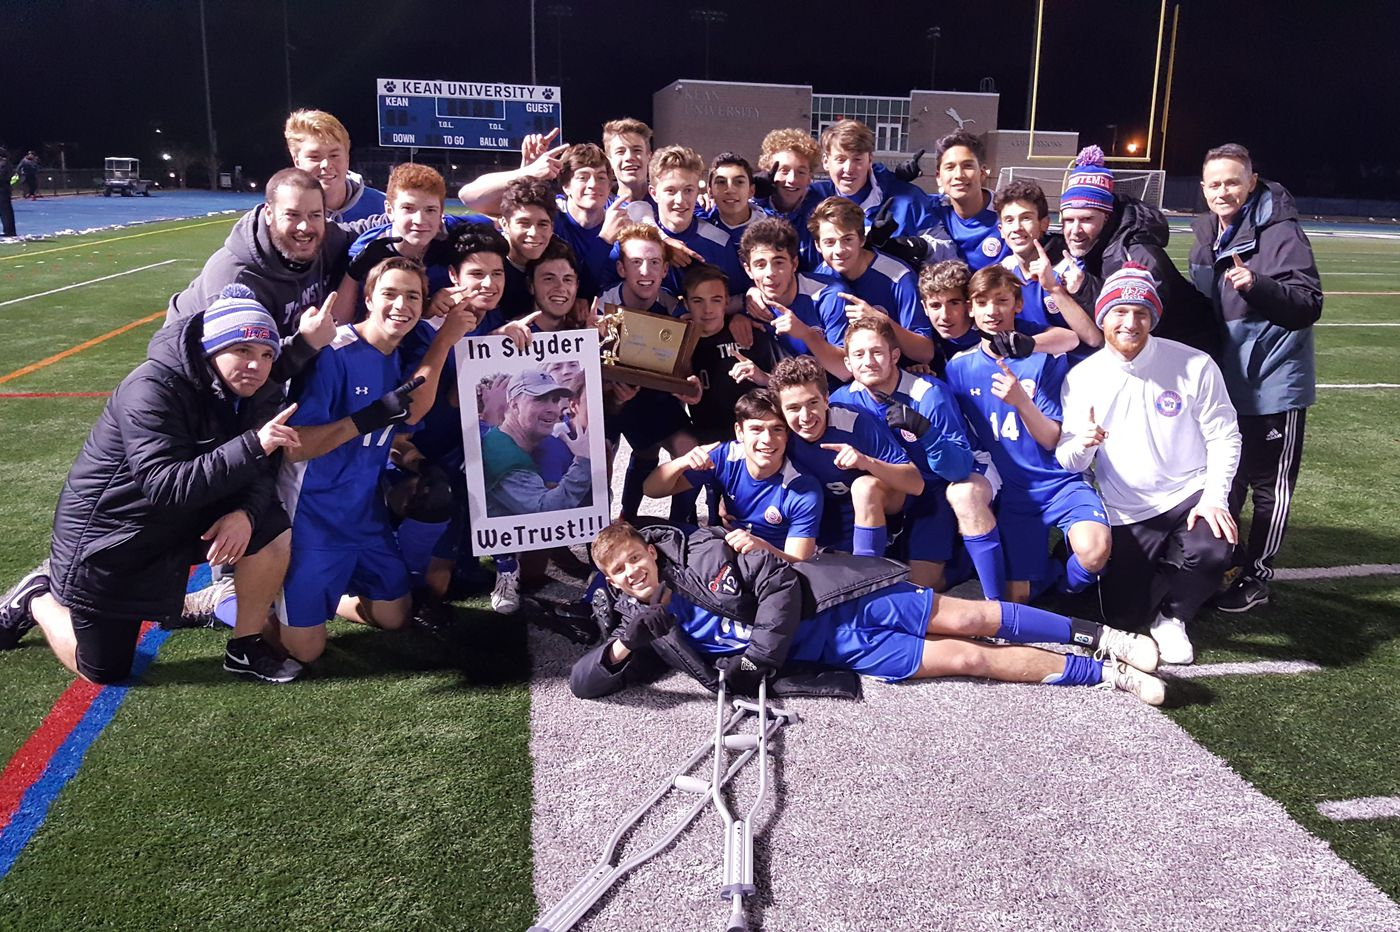 Justin Bautista scores winner as Washington Township takes Group 4 state soccer title